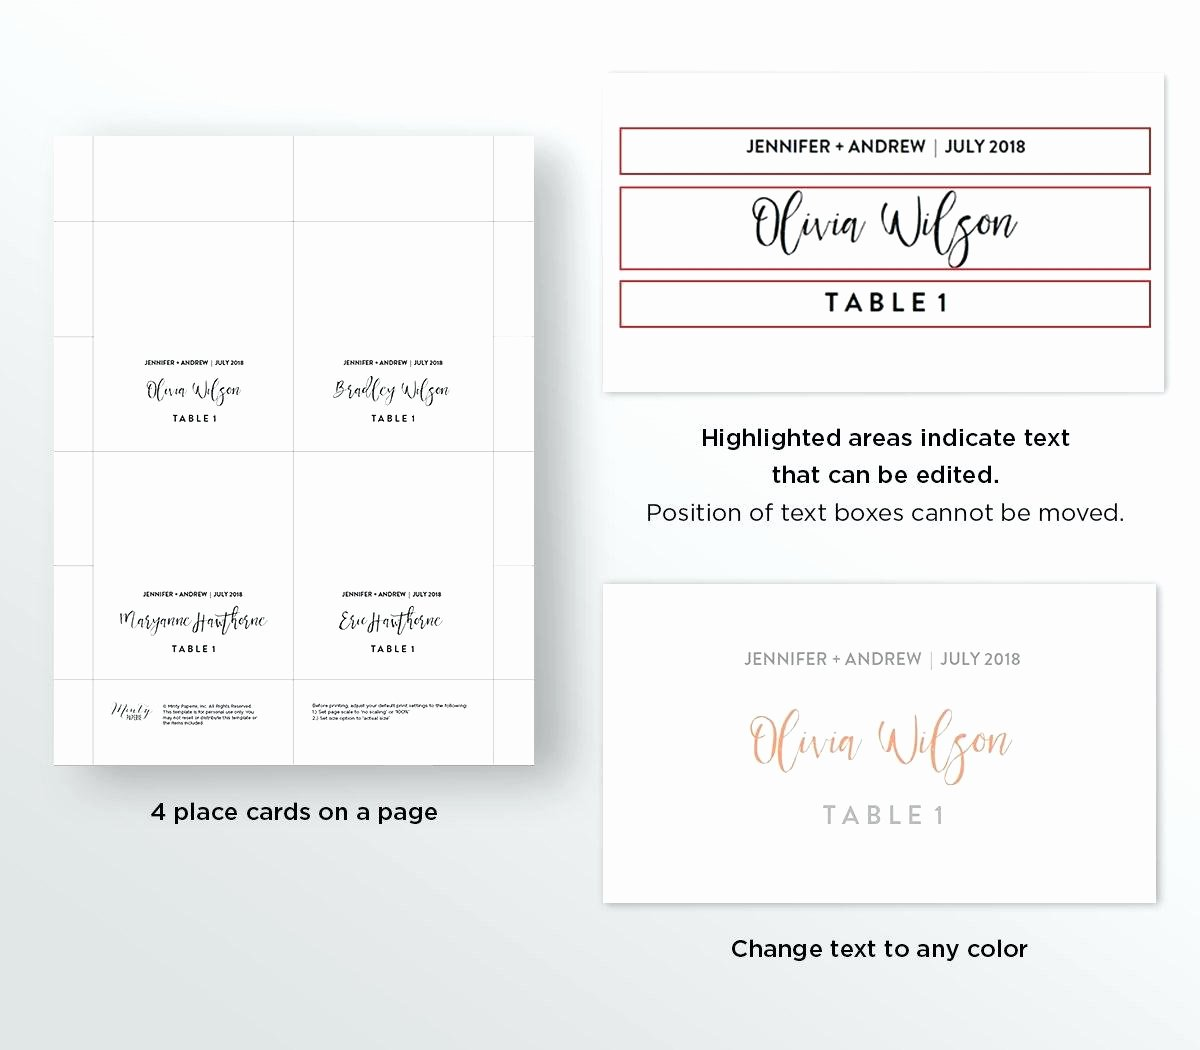 Folded Business Cards Template Beautiful Folded Business Card Template